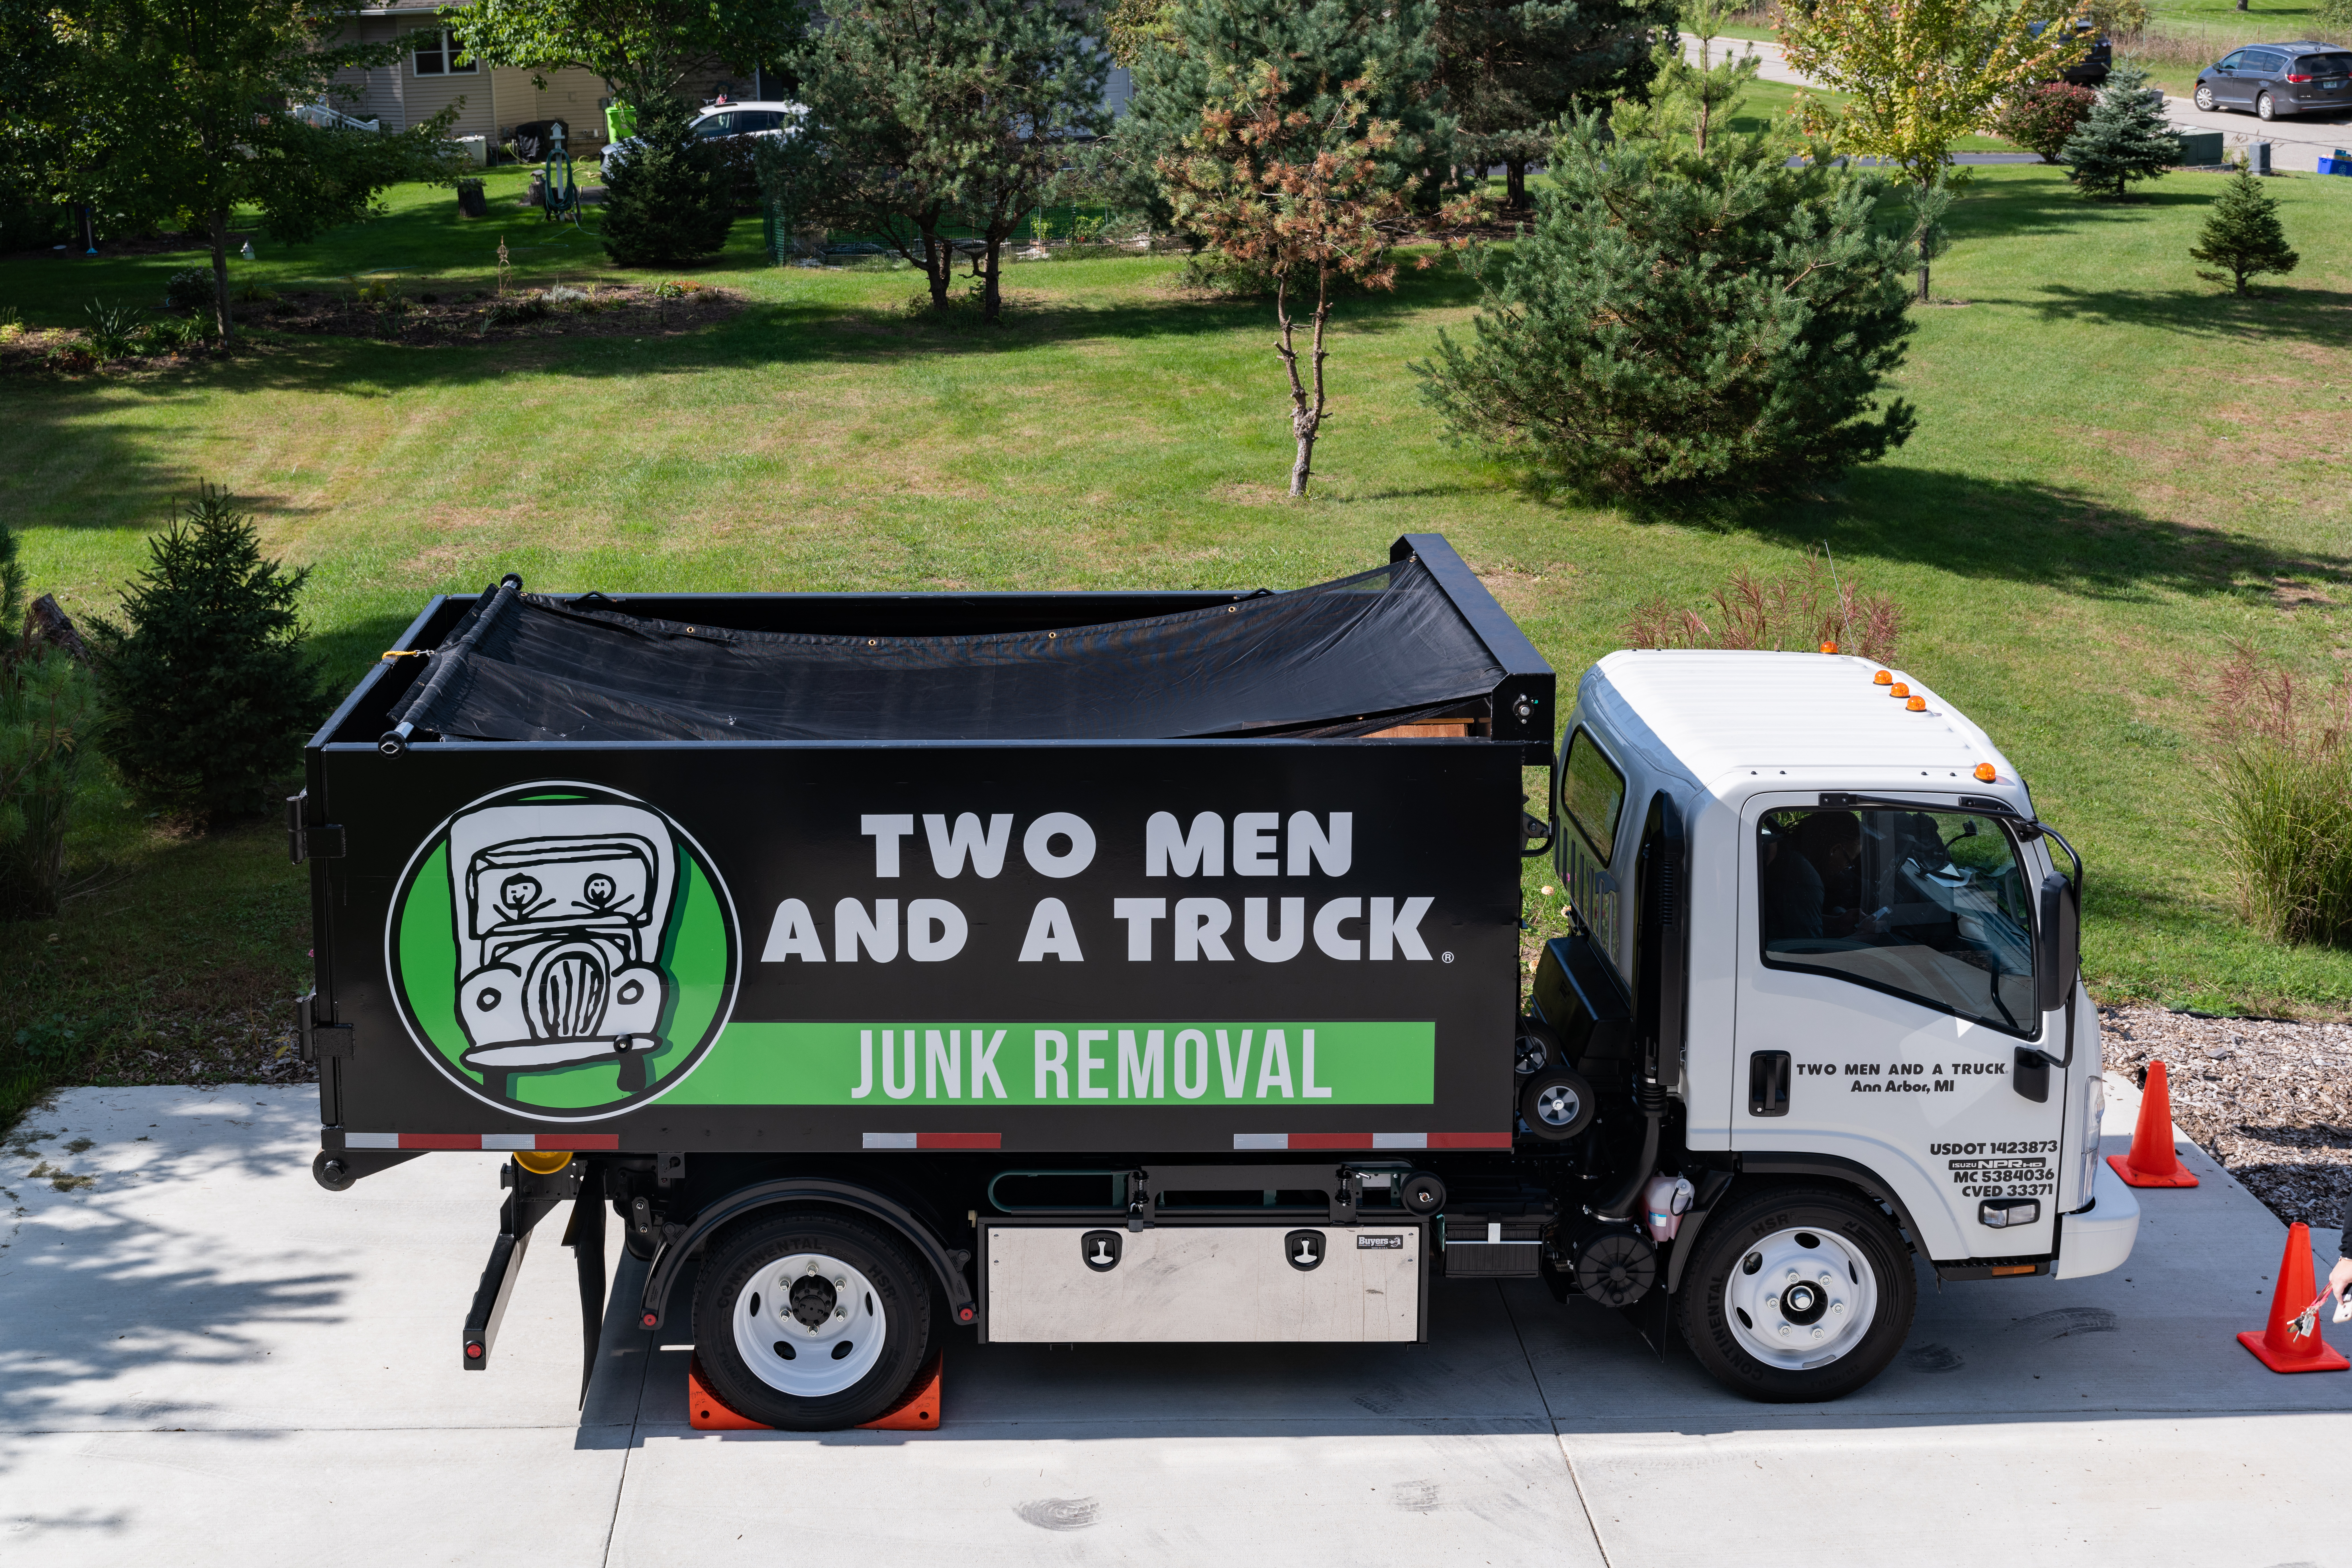 A TWO MEN AND A TRUCK Junk Truck